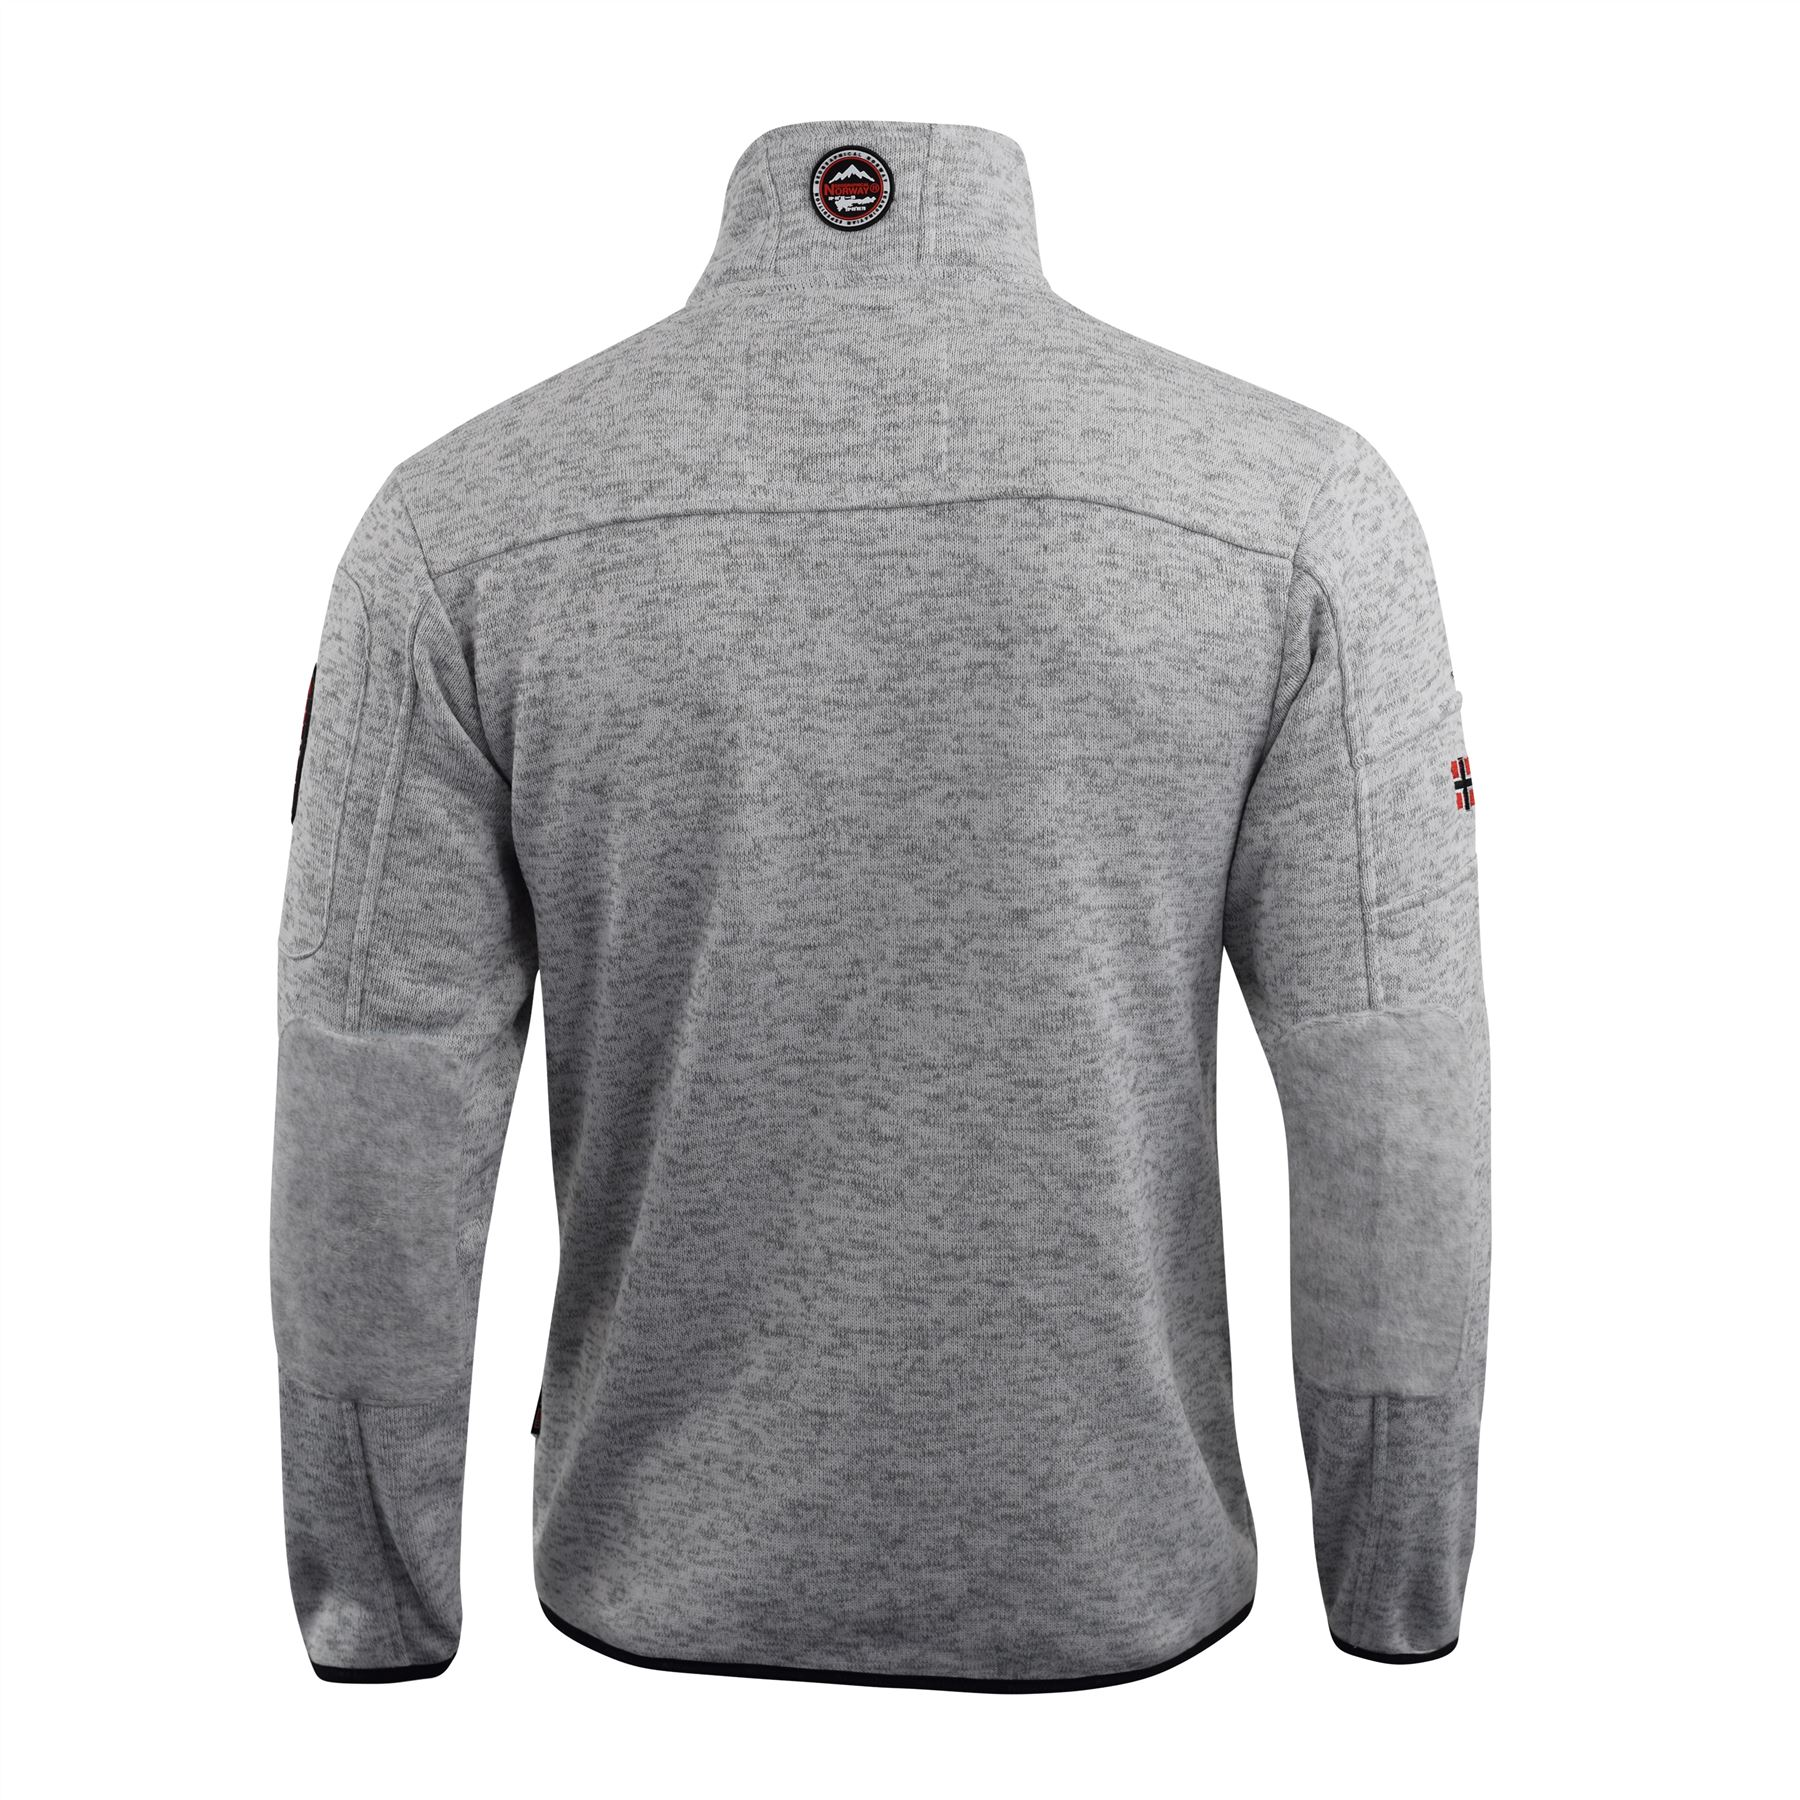 Mens Fleece Jacket Geographical Norway Cozy Lined Outdoor